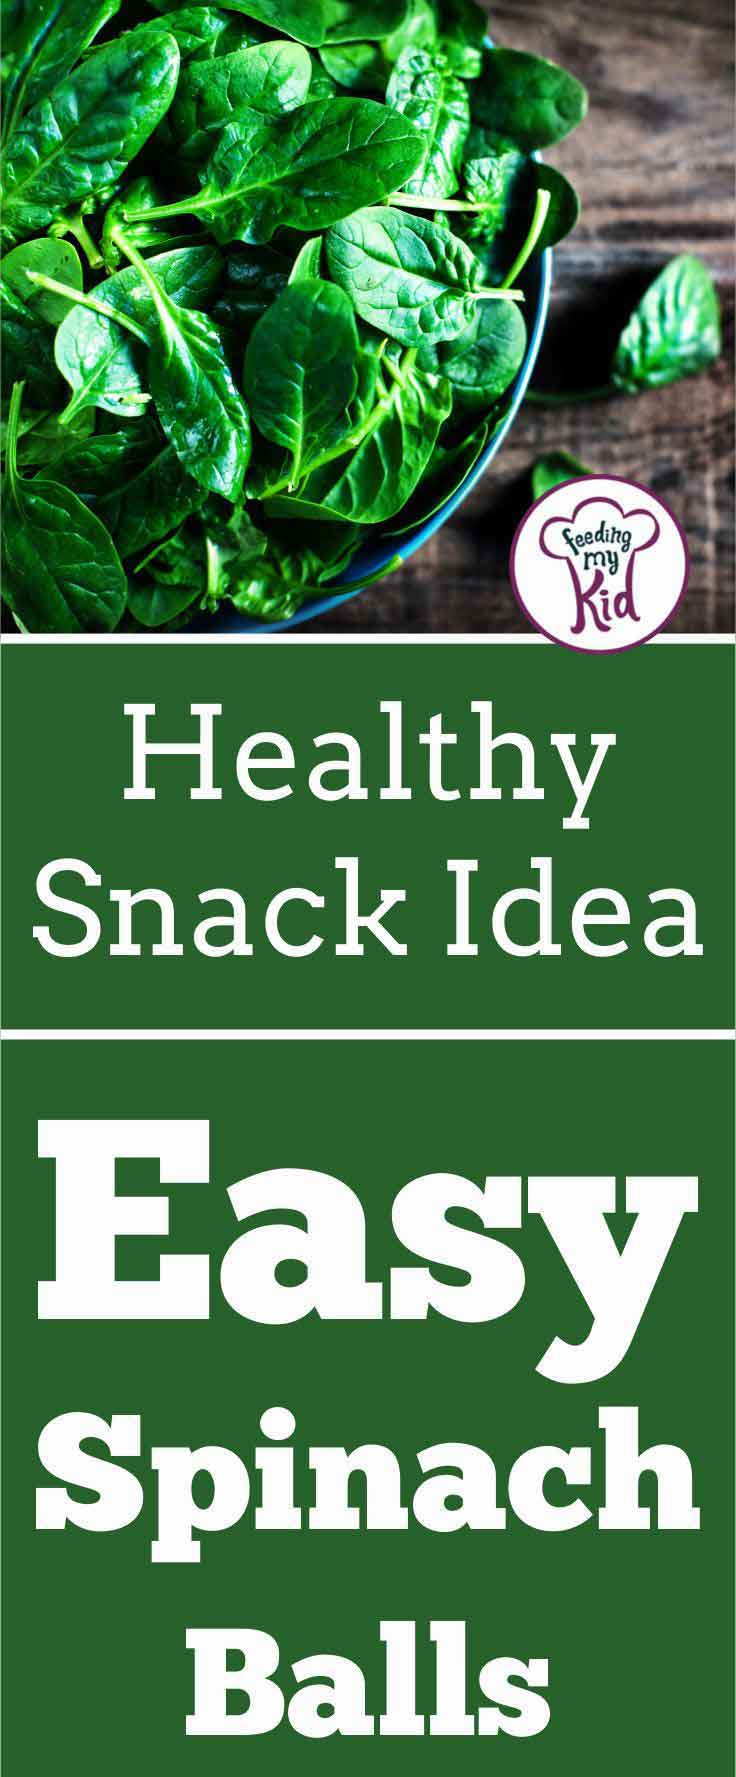 These spinach balls are easy to make and a great grab and go snack. They're the perfect healthy snack for toddlers and preschoolers.